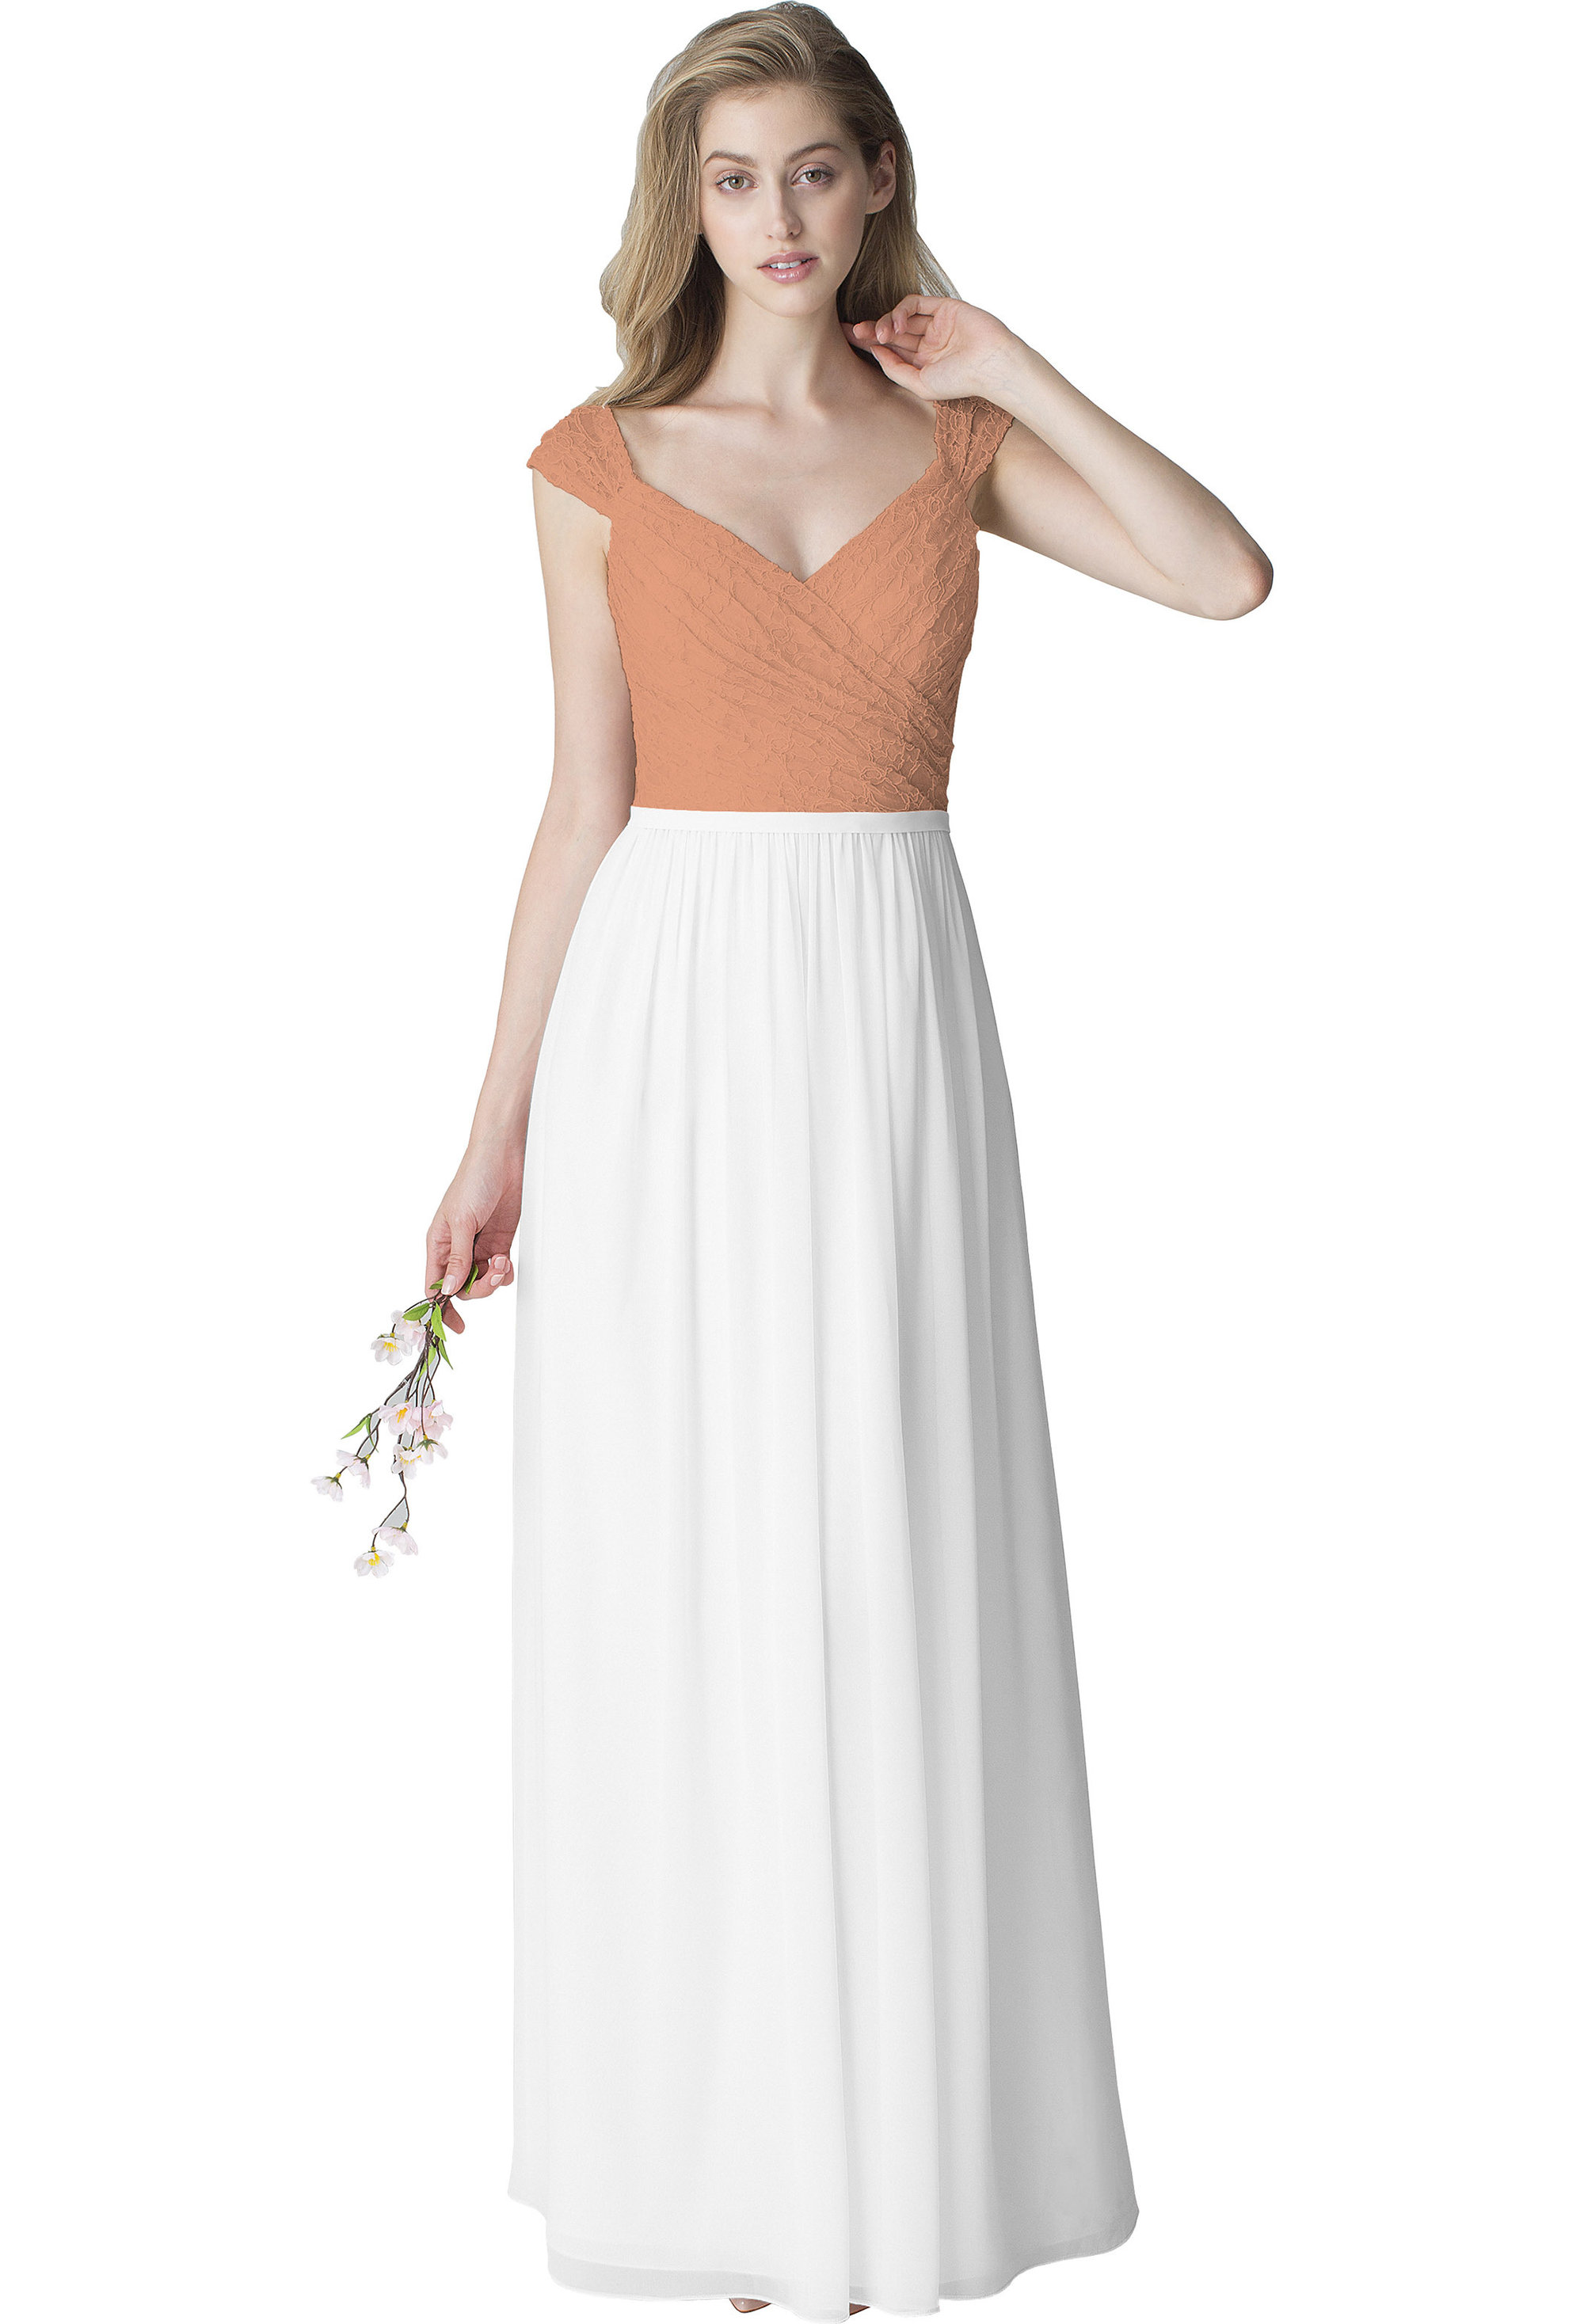 Bill Levkoff WHITE Chiffon V-neck Floor Length gown, $220.00 Front